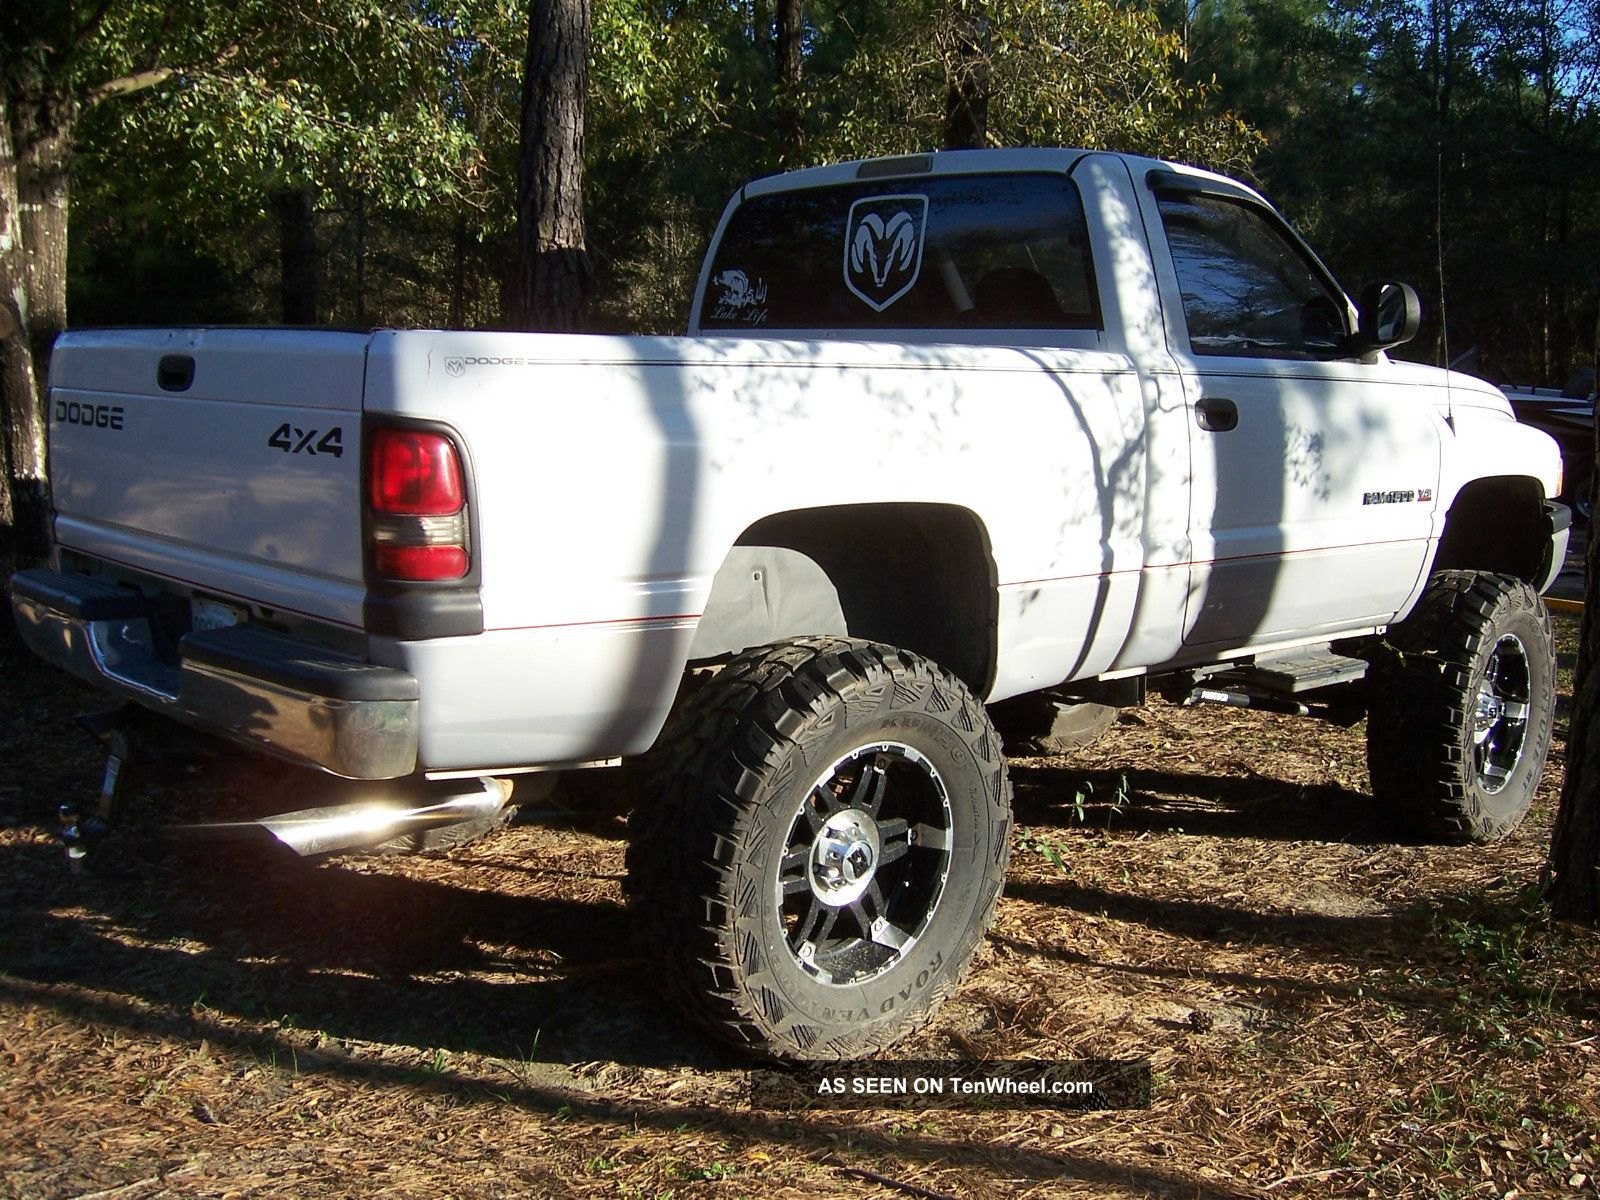 1999 Dodge Ram 1500 4x4 Lifted Xd 20 S And 38 S needs Engine